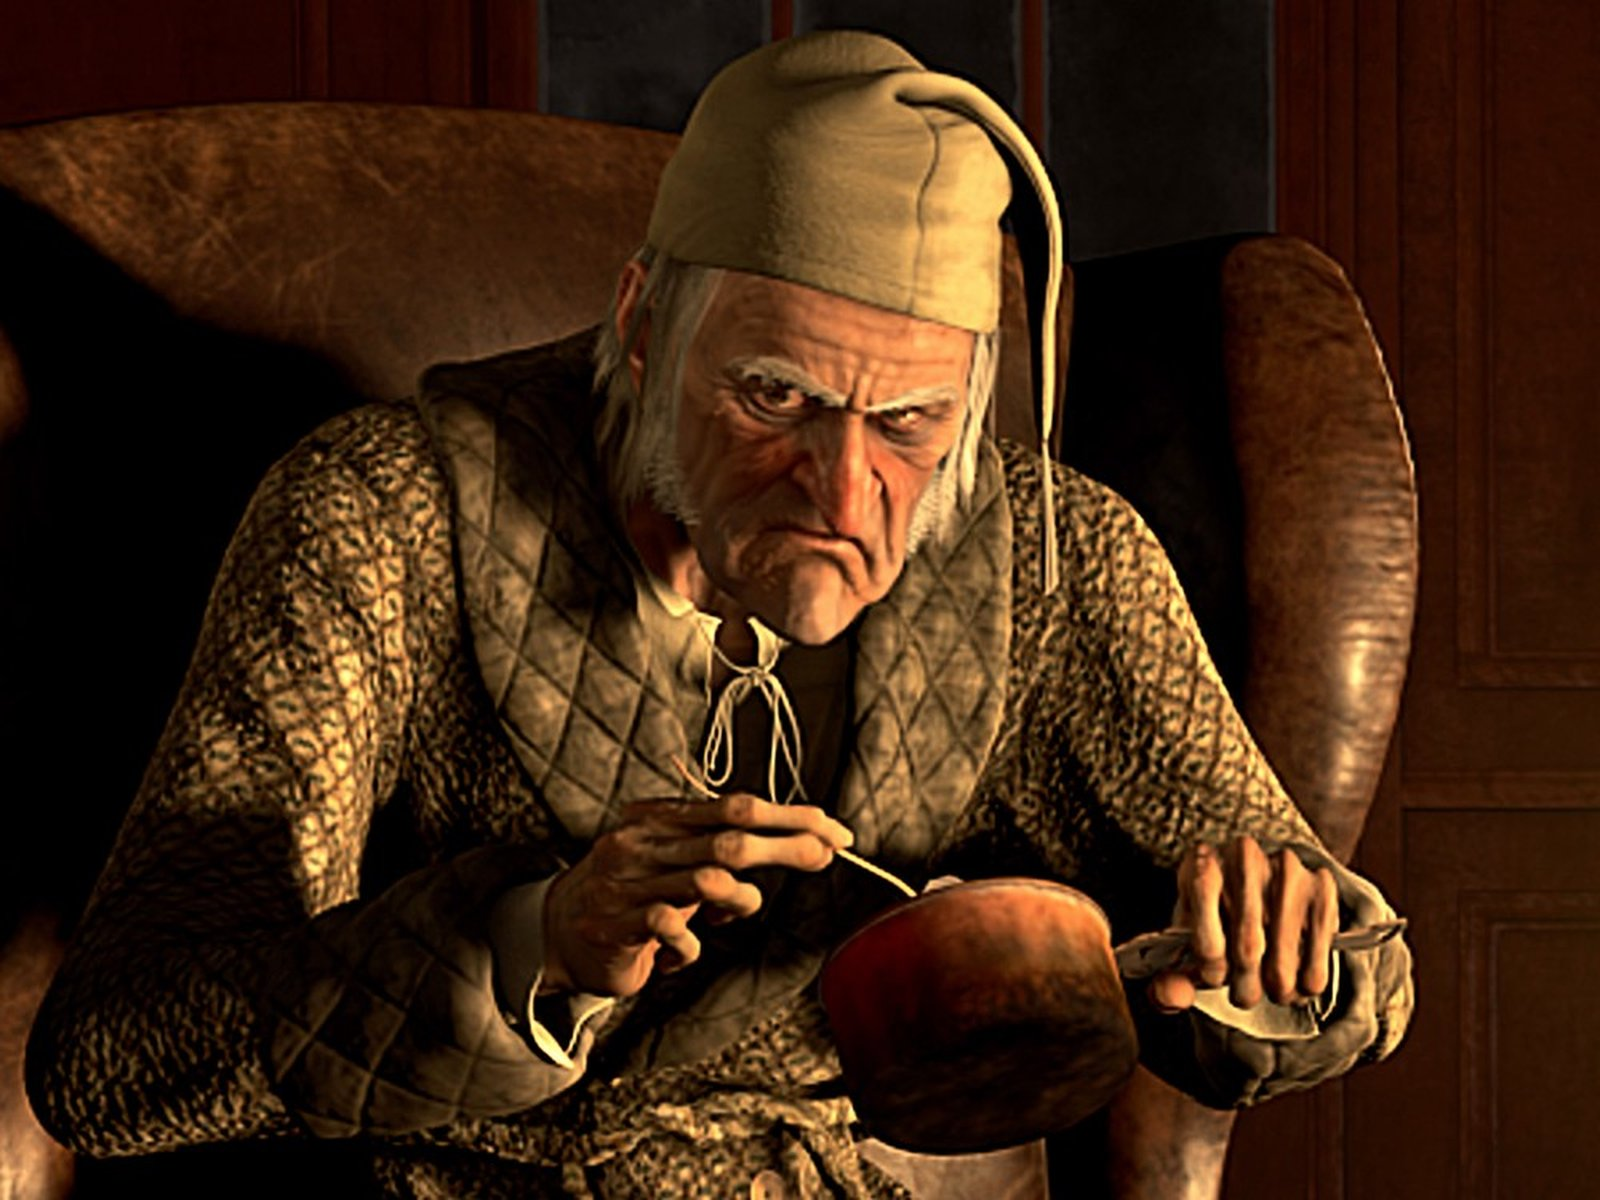 Jim Carrey as a motion-captured animated Scrooge in A Christmas Carol (2009)